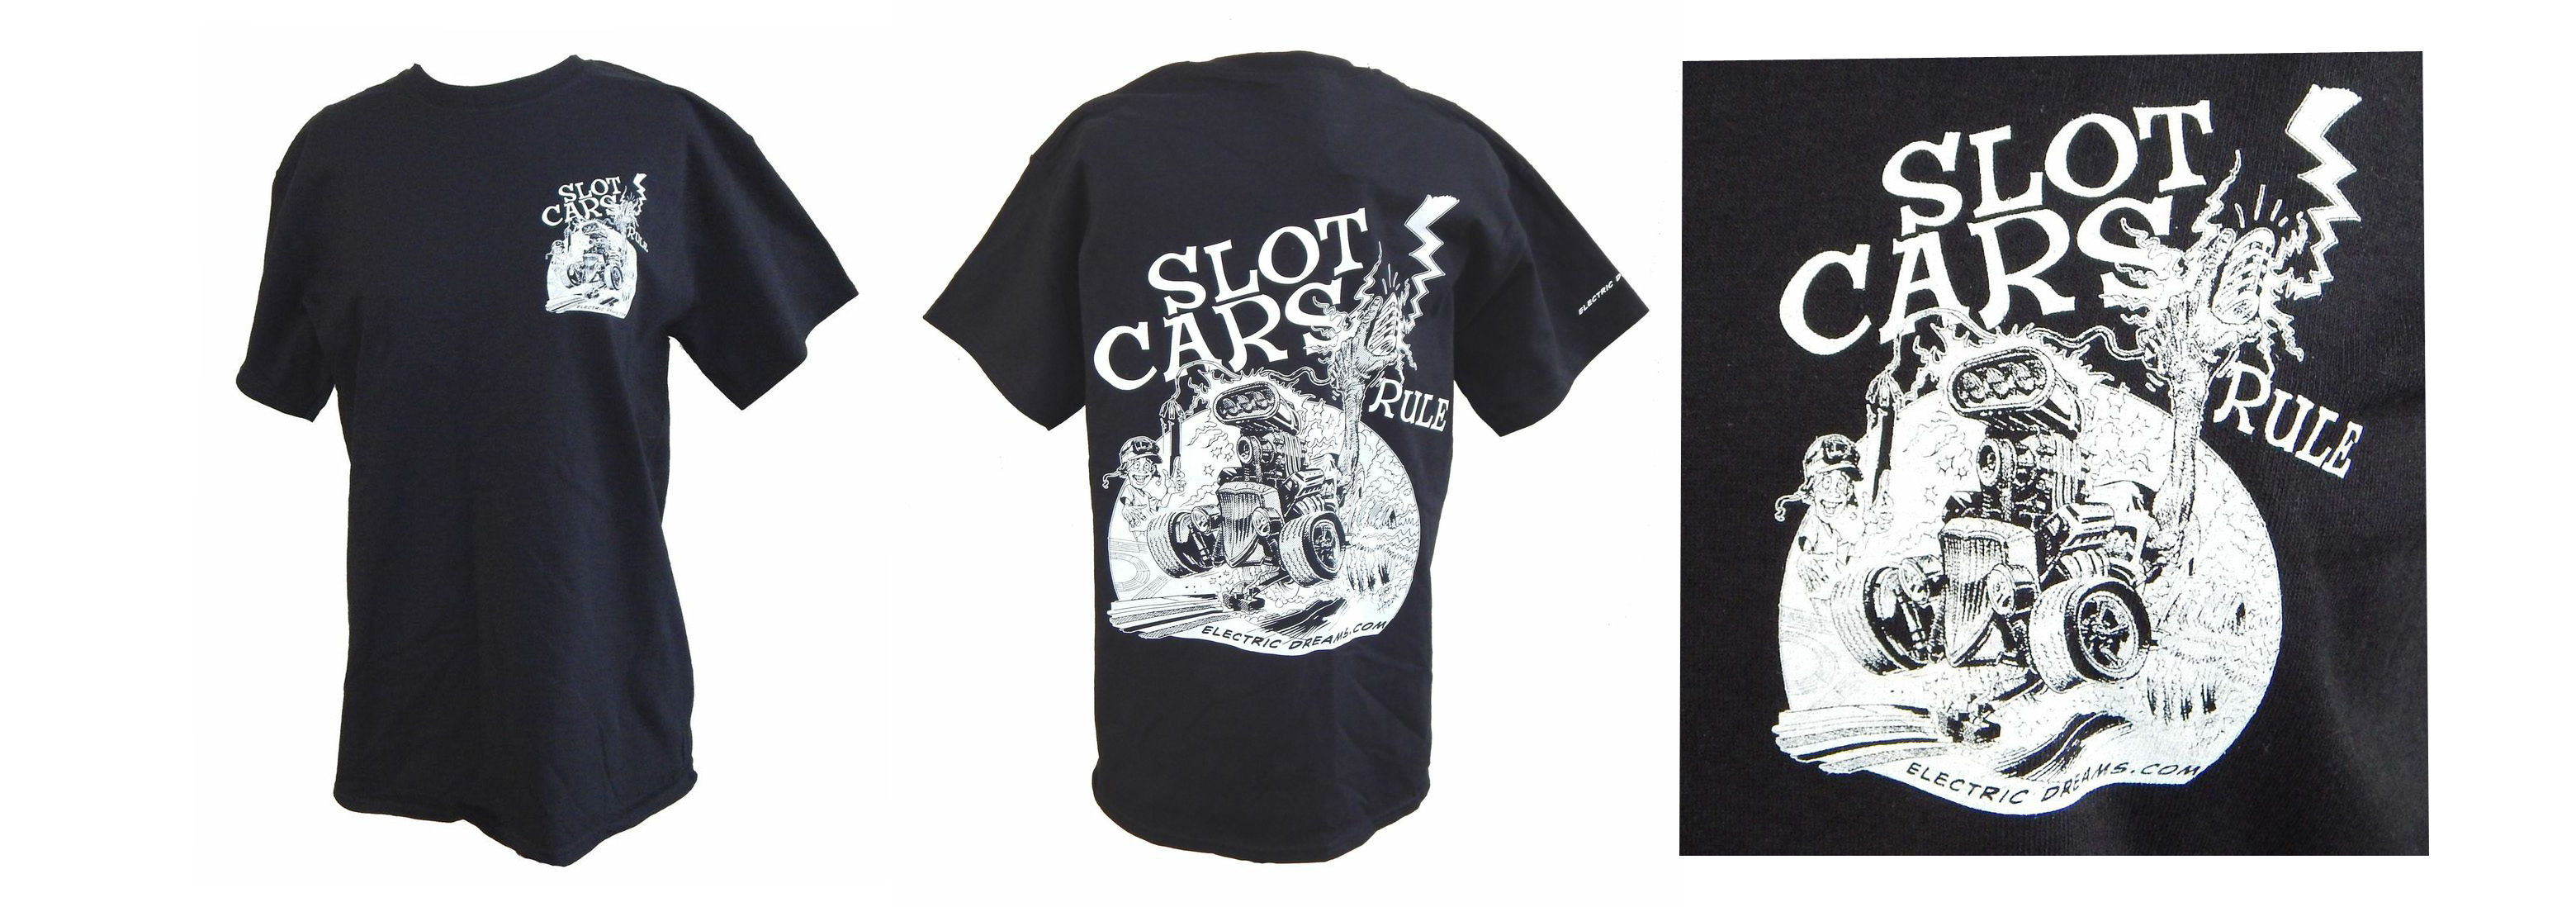 "ETS-15 T-shirt ""Slot Cars Rule"" by Bob Hardin, black, with white art work---size L"